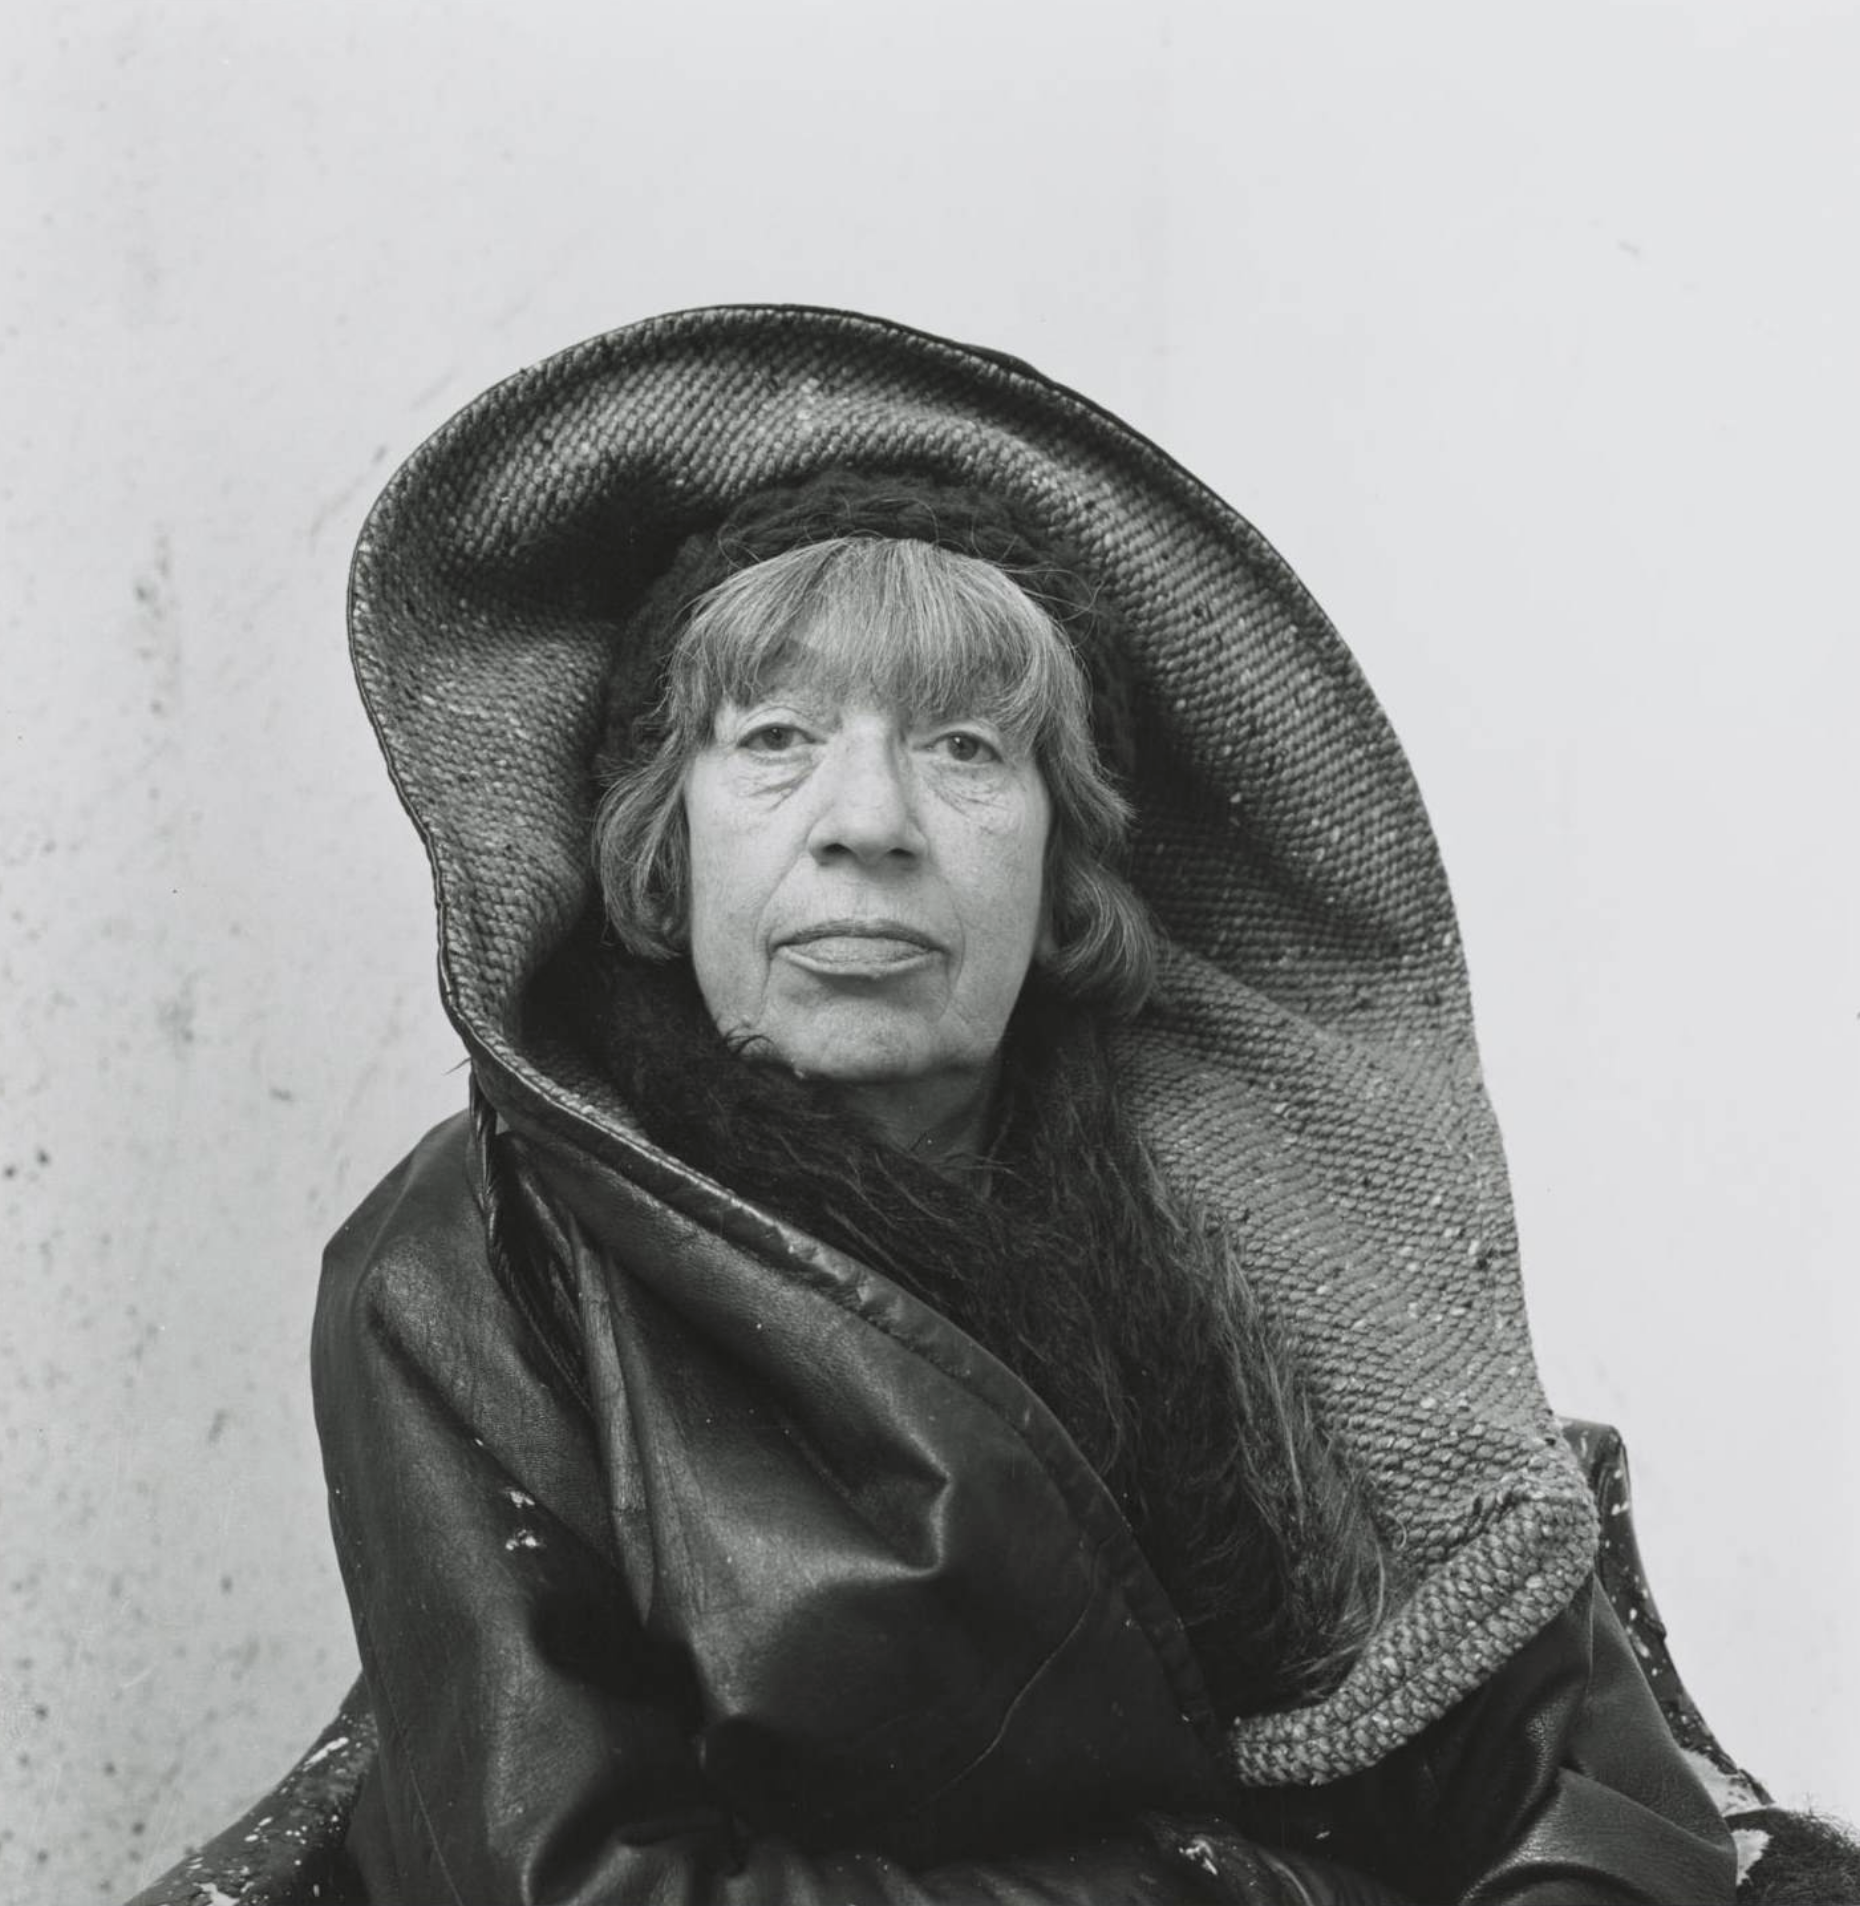 Lee Krasner shot by Irving Penn, Springs, New York, 1972. ©THE IRVING PENN FOUNDATION